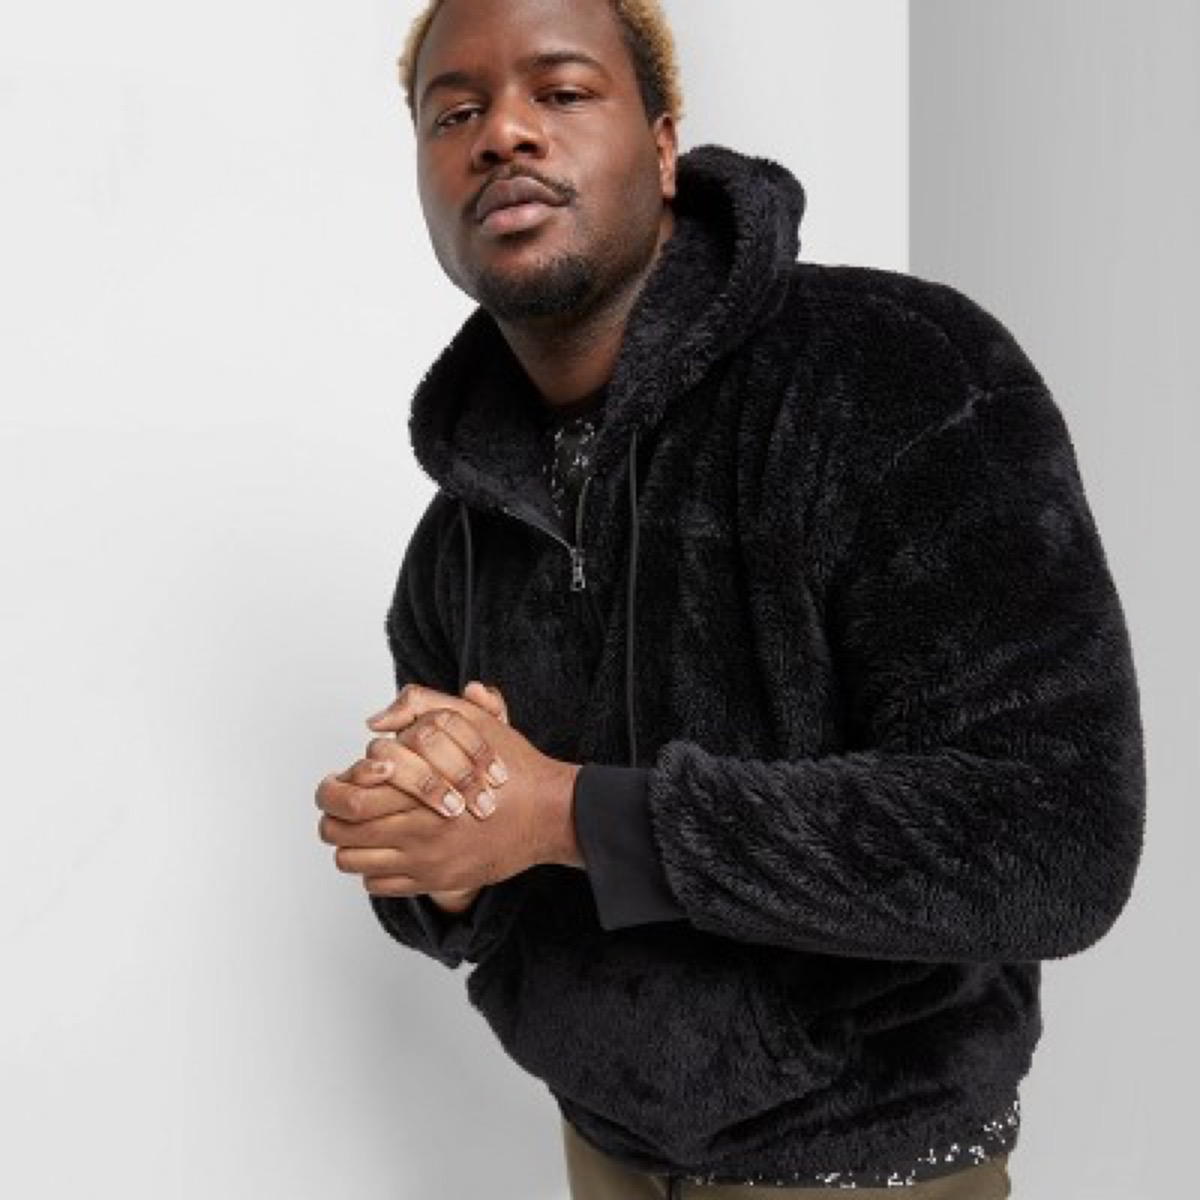 young black man in furry jacket